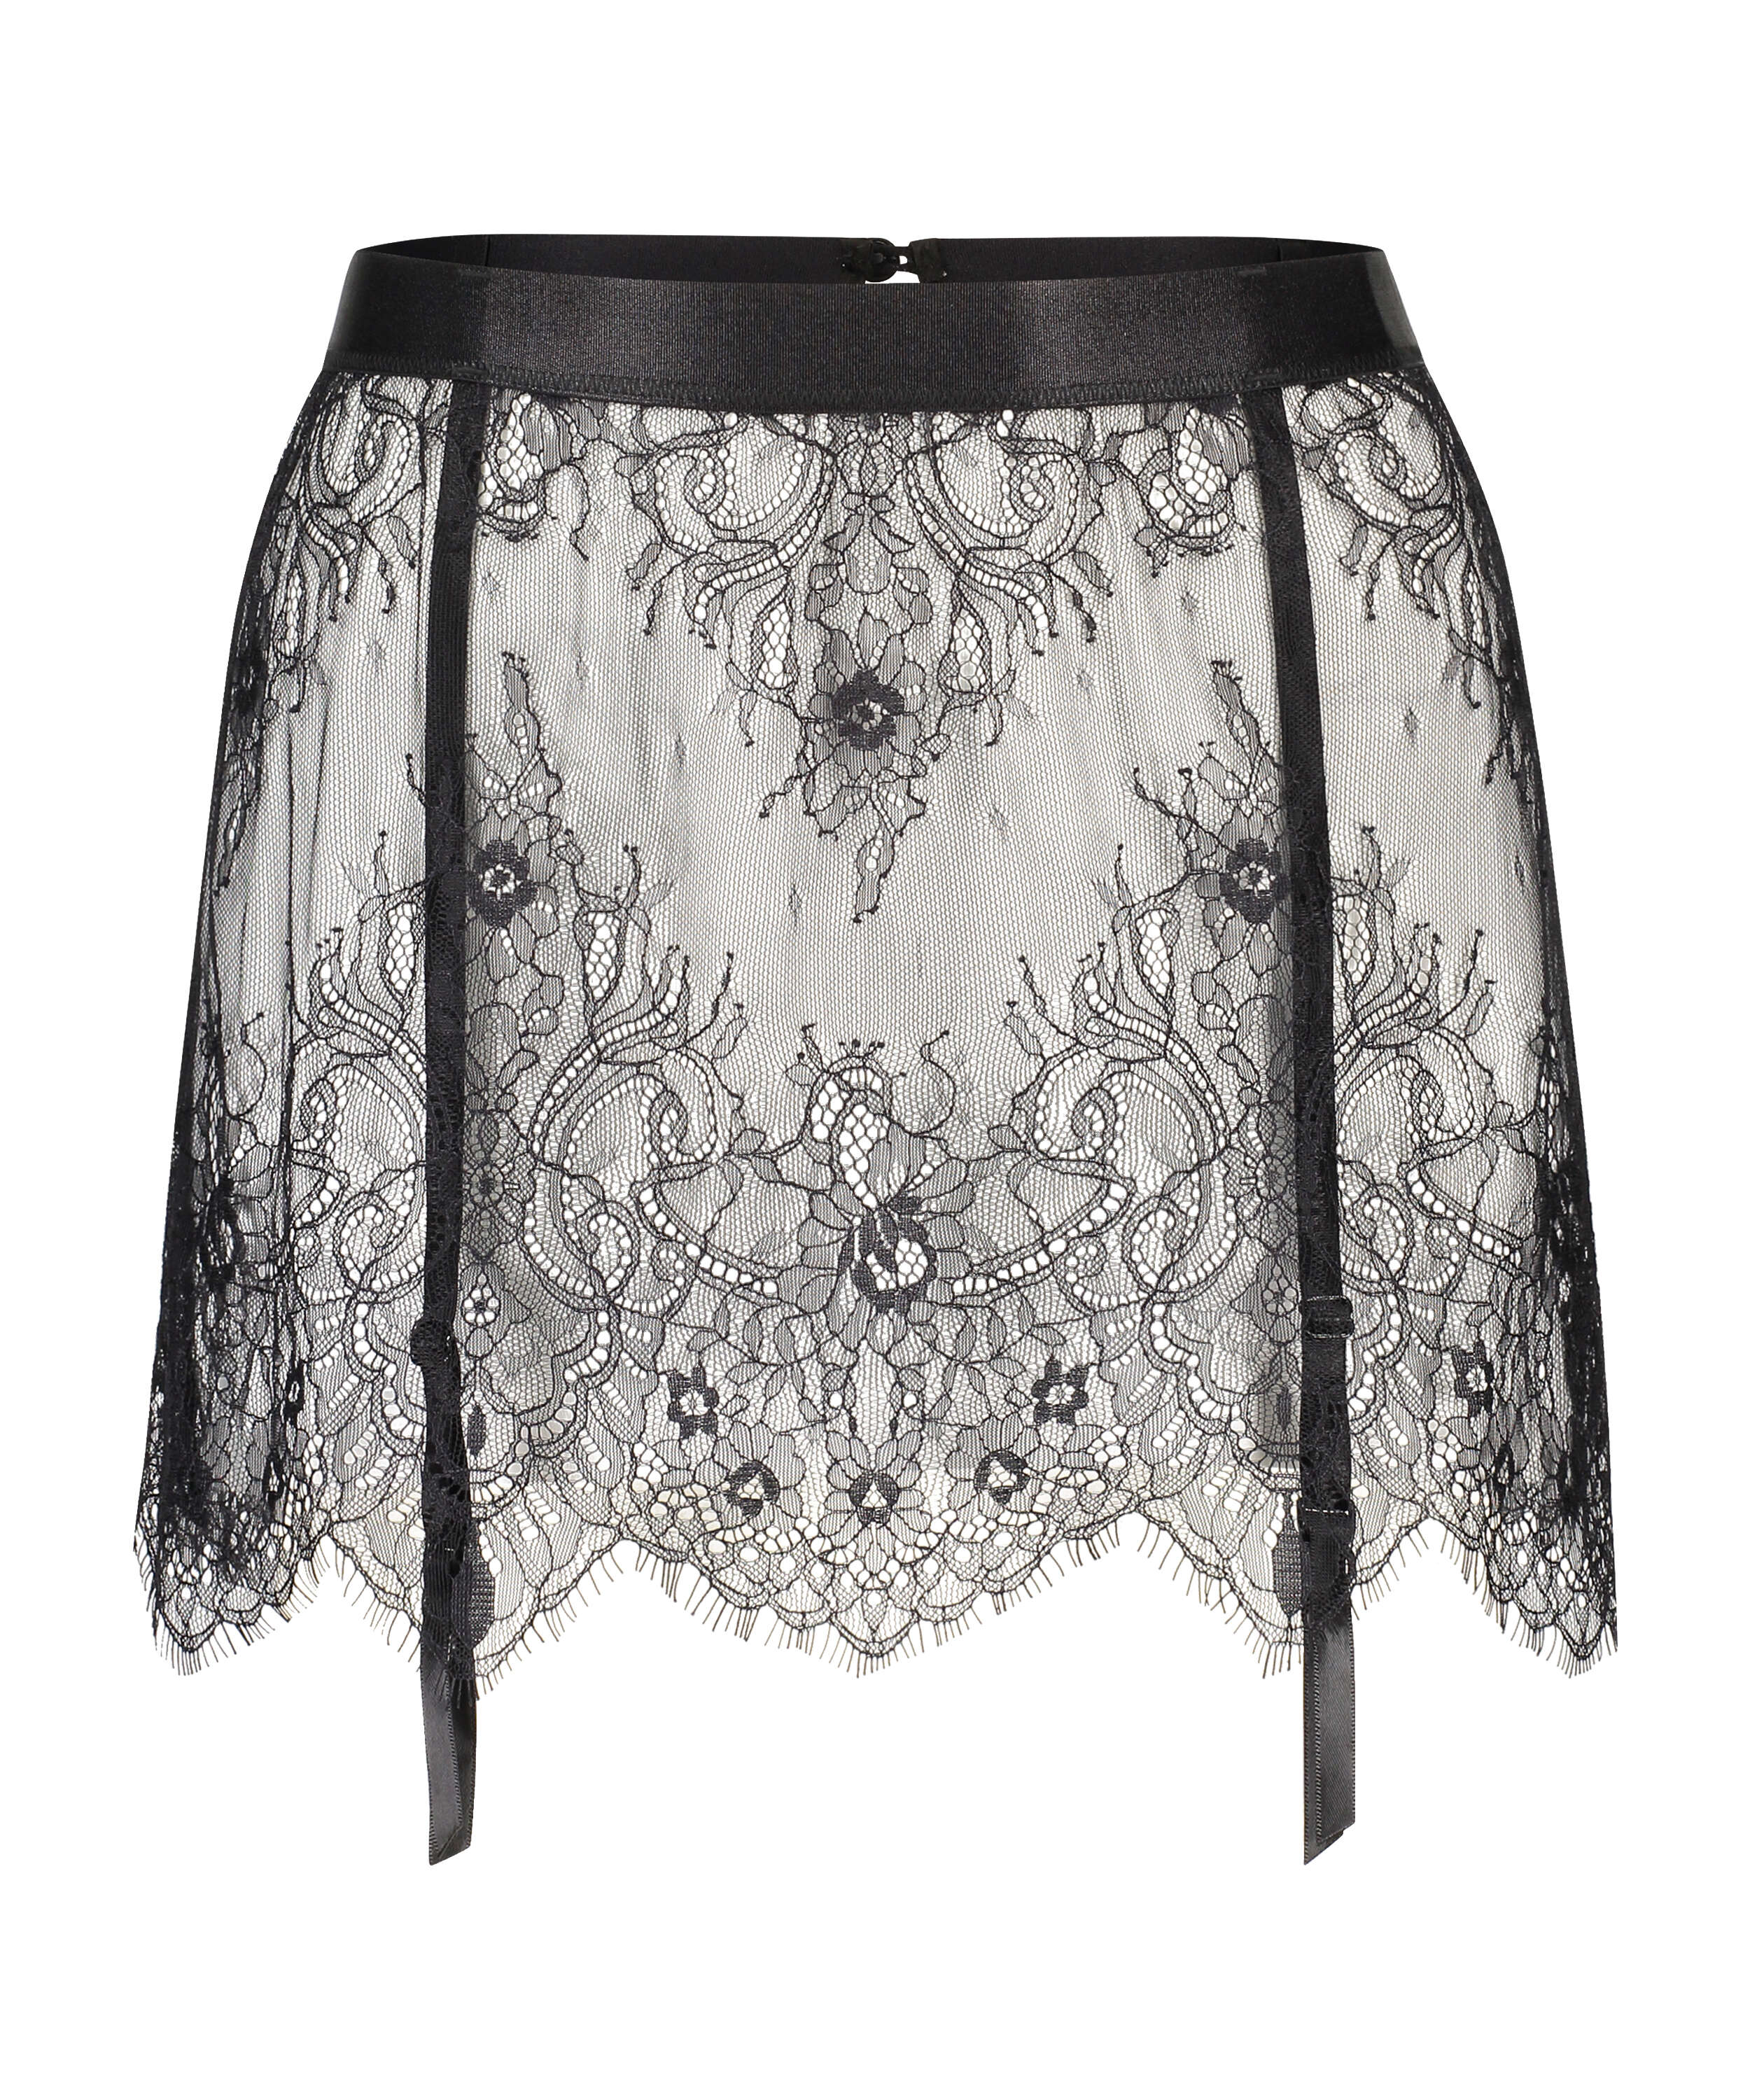 Lace Skirt, Black, main